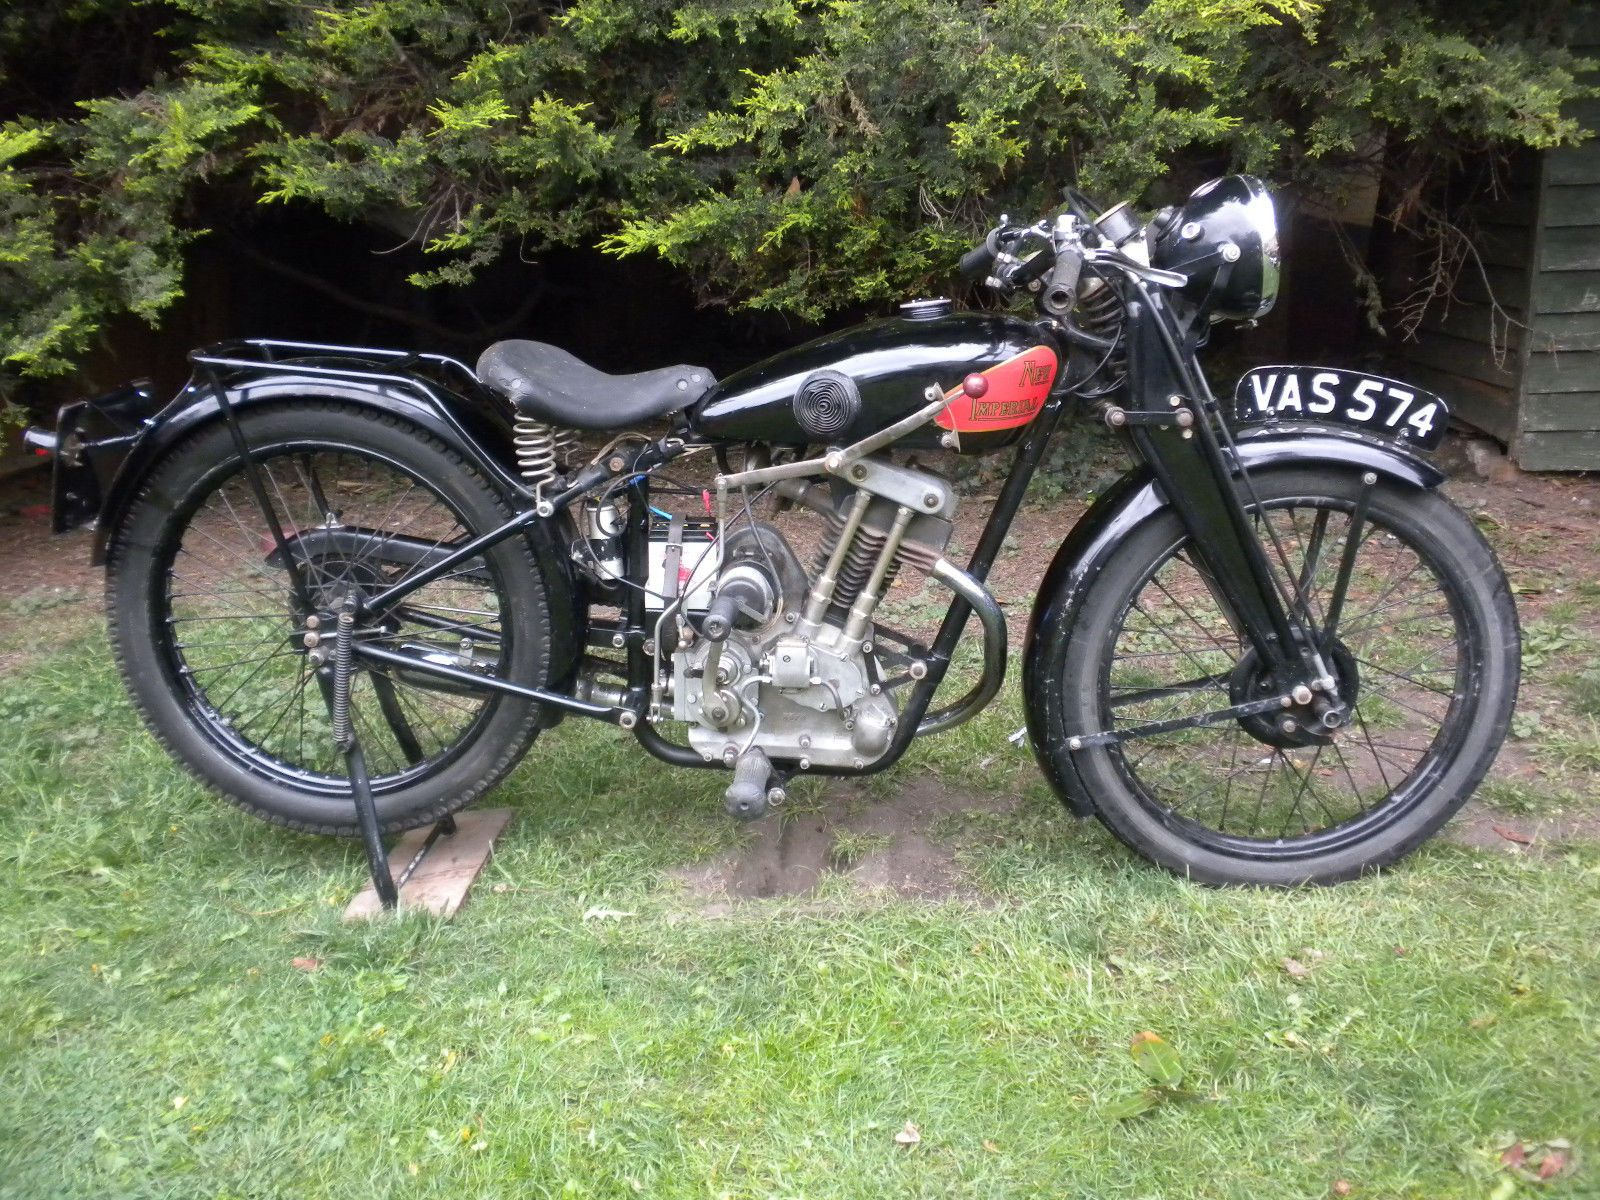 Ebay New Imperial Type 23 Model 1932 For Sale Classic Motorcycle Motorcycles Biker Classic Motorcycles Vintage Bikes Classic Bikes